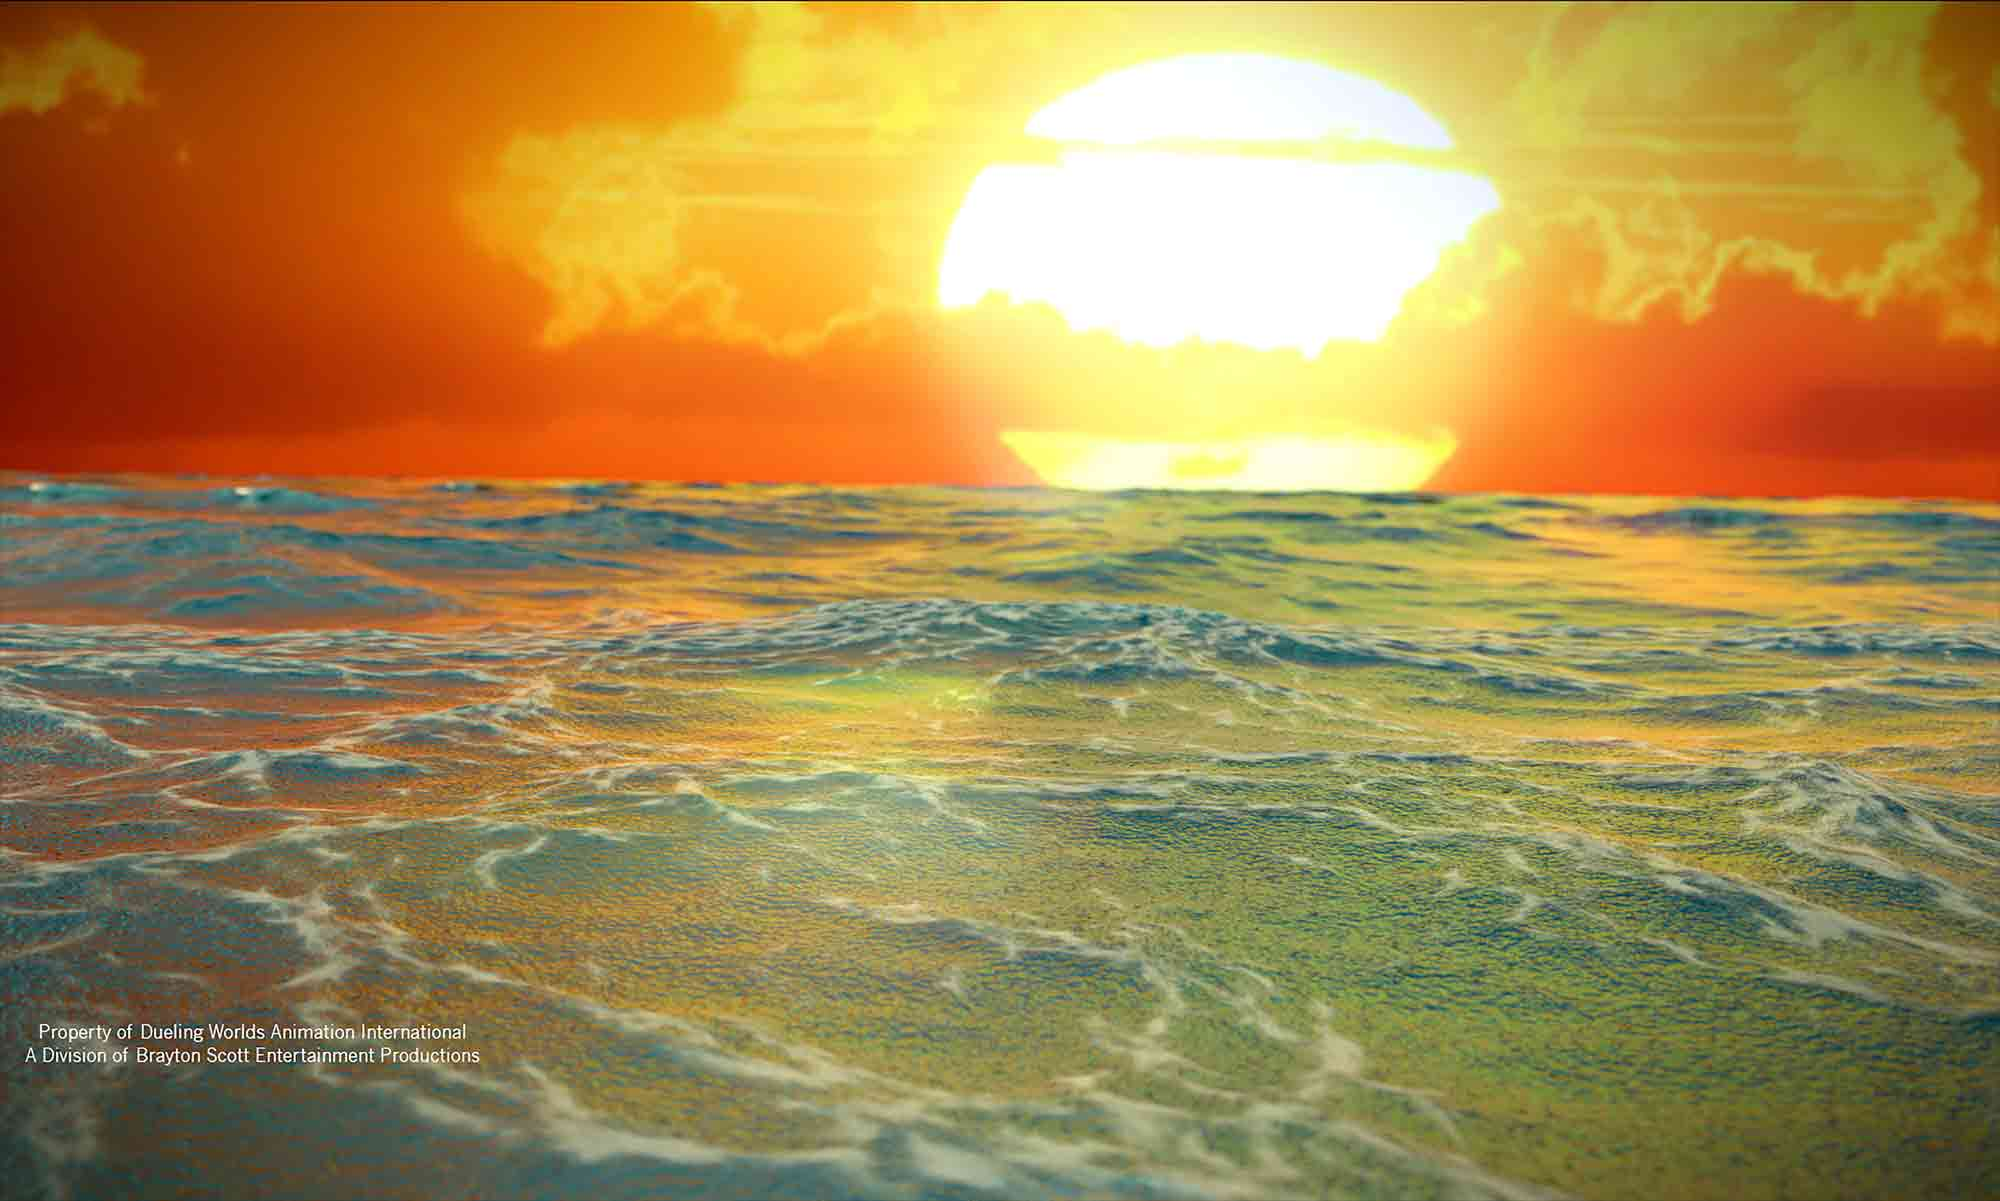 Image of Dueling Worlds© International Braytonion Ocean out to Sea